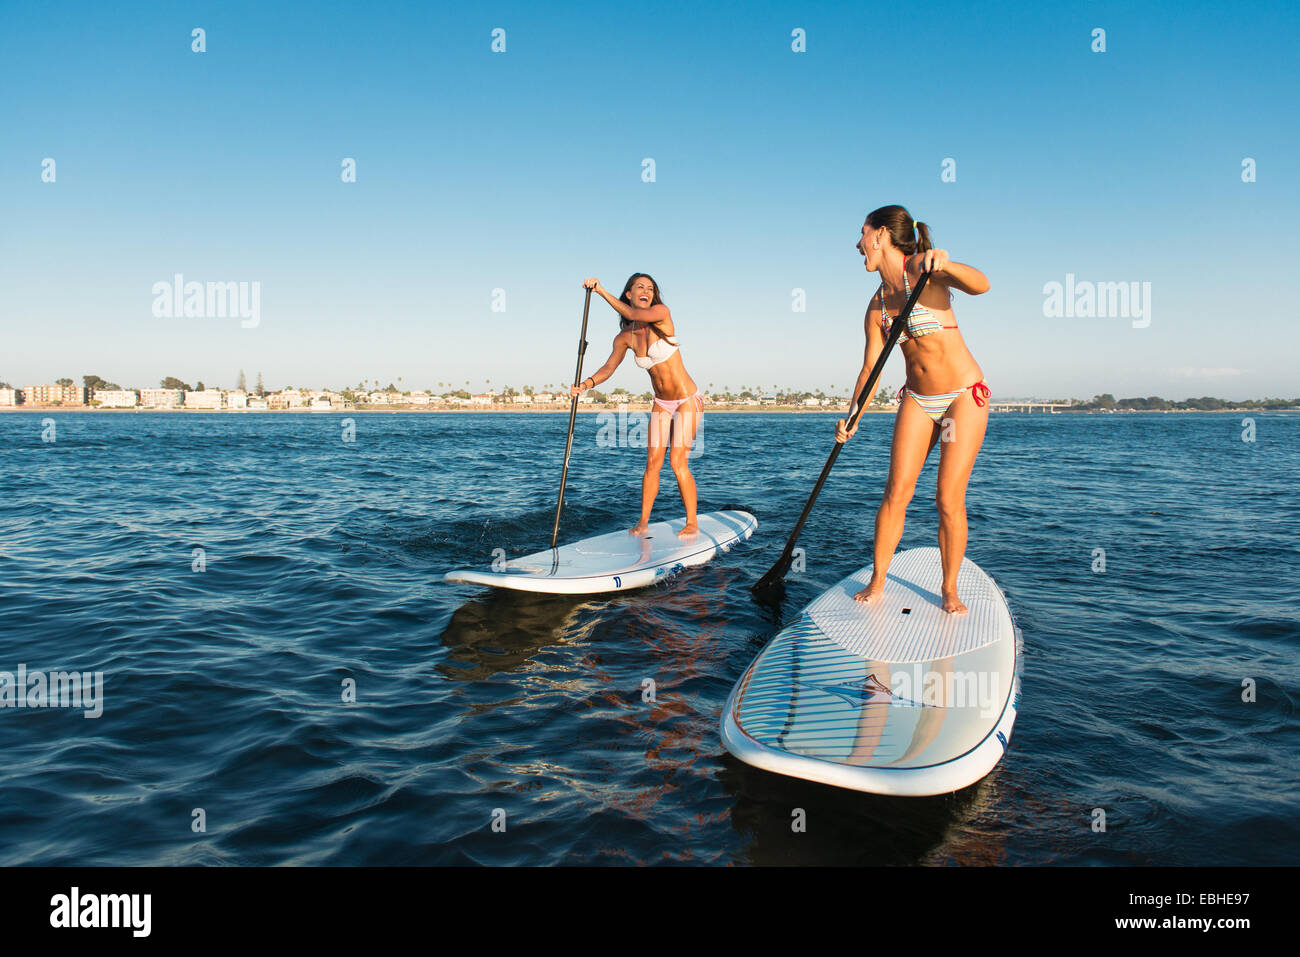 Due donne che chiacchierano mentre stand up paddleboarding, Mission Bay, San Diego, California, Stati Uniti d'America Immagini Stock